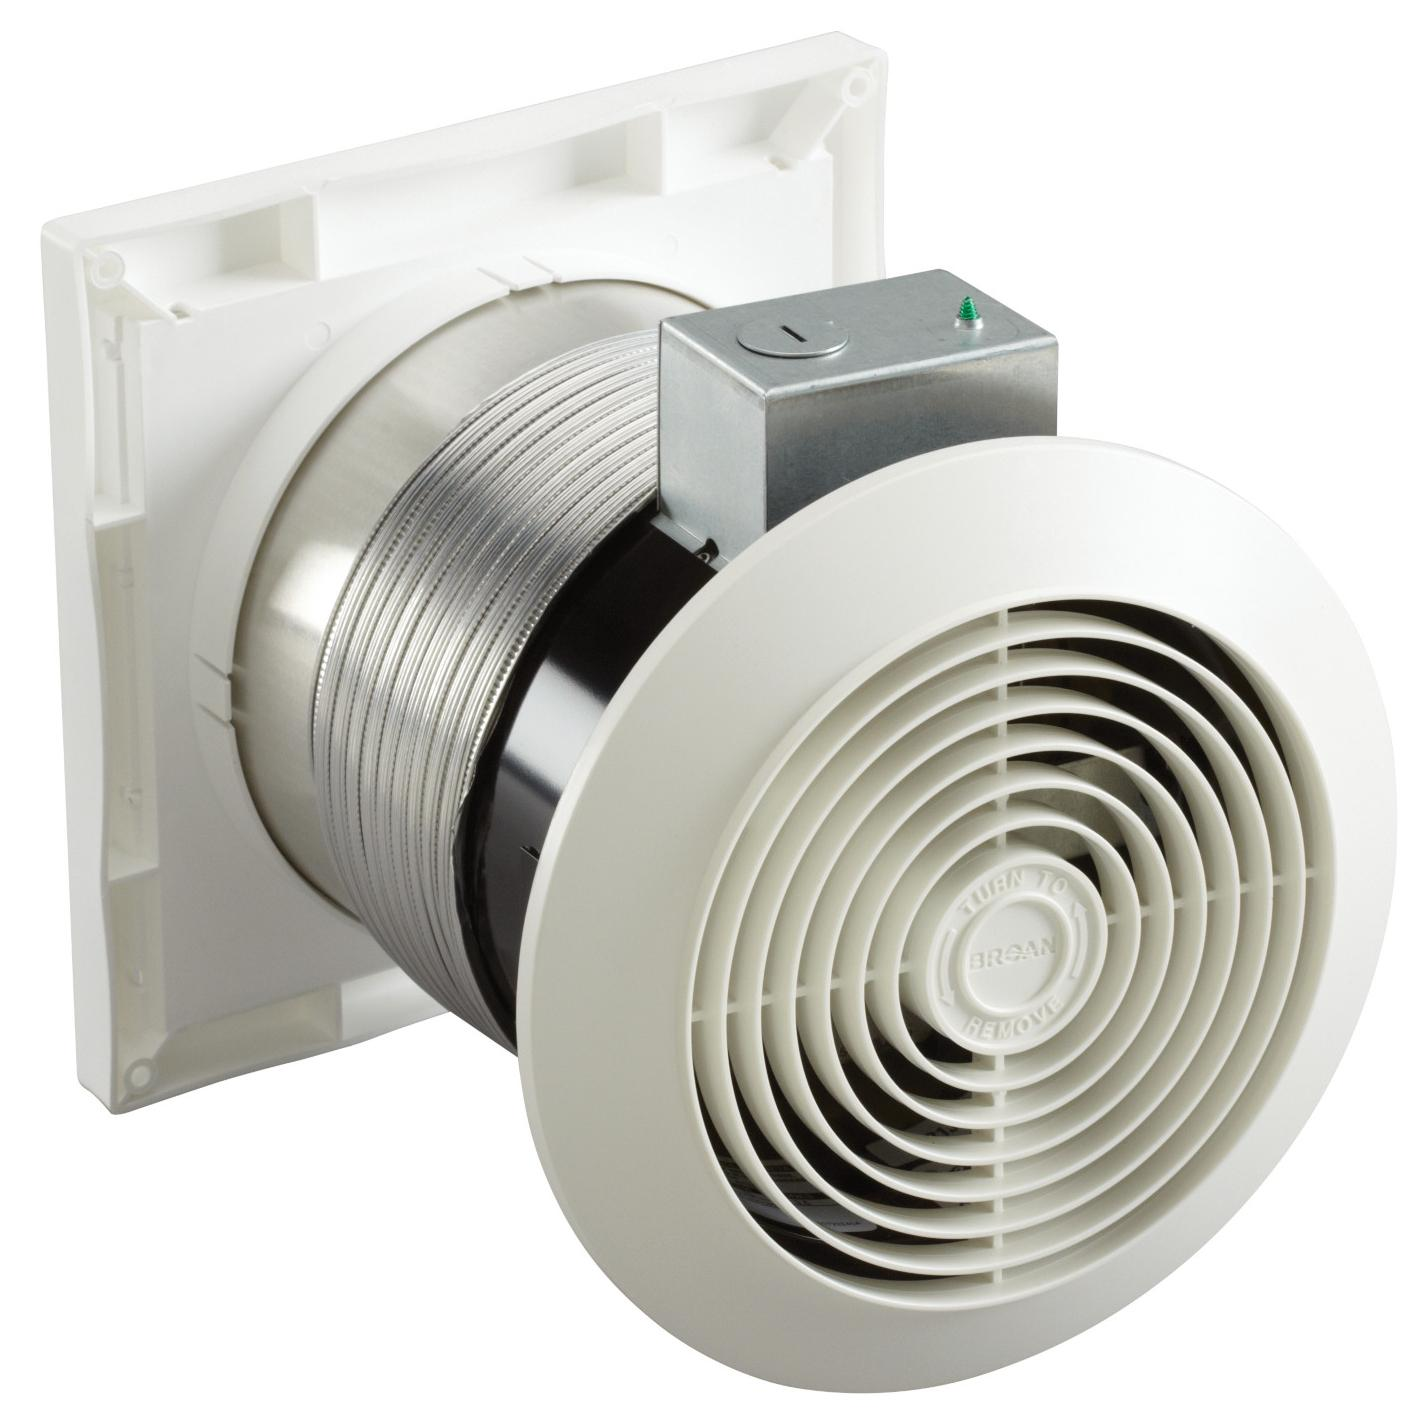 Through Wall Ventilation Fan : Broan m through wall fan inch cfm sones